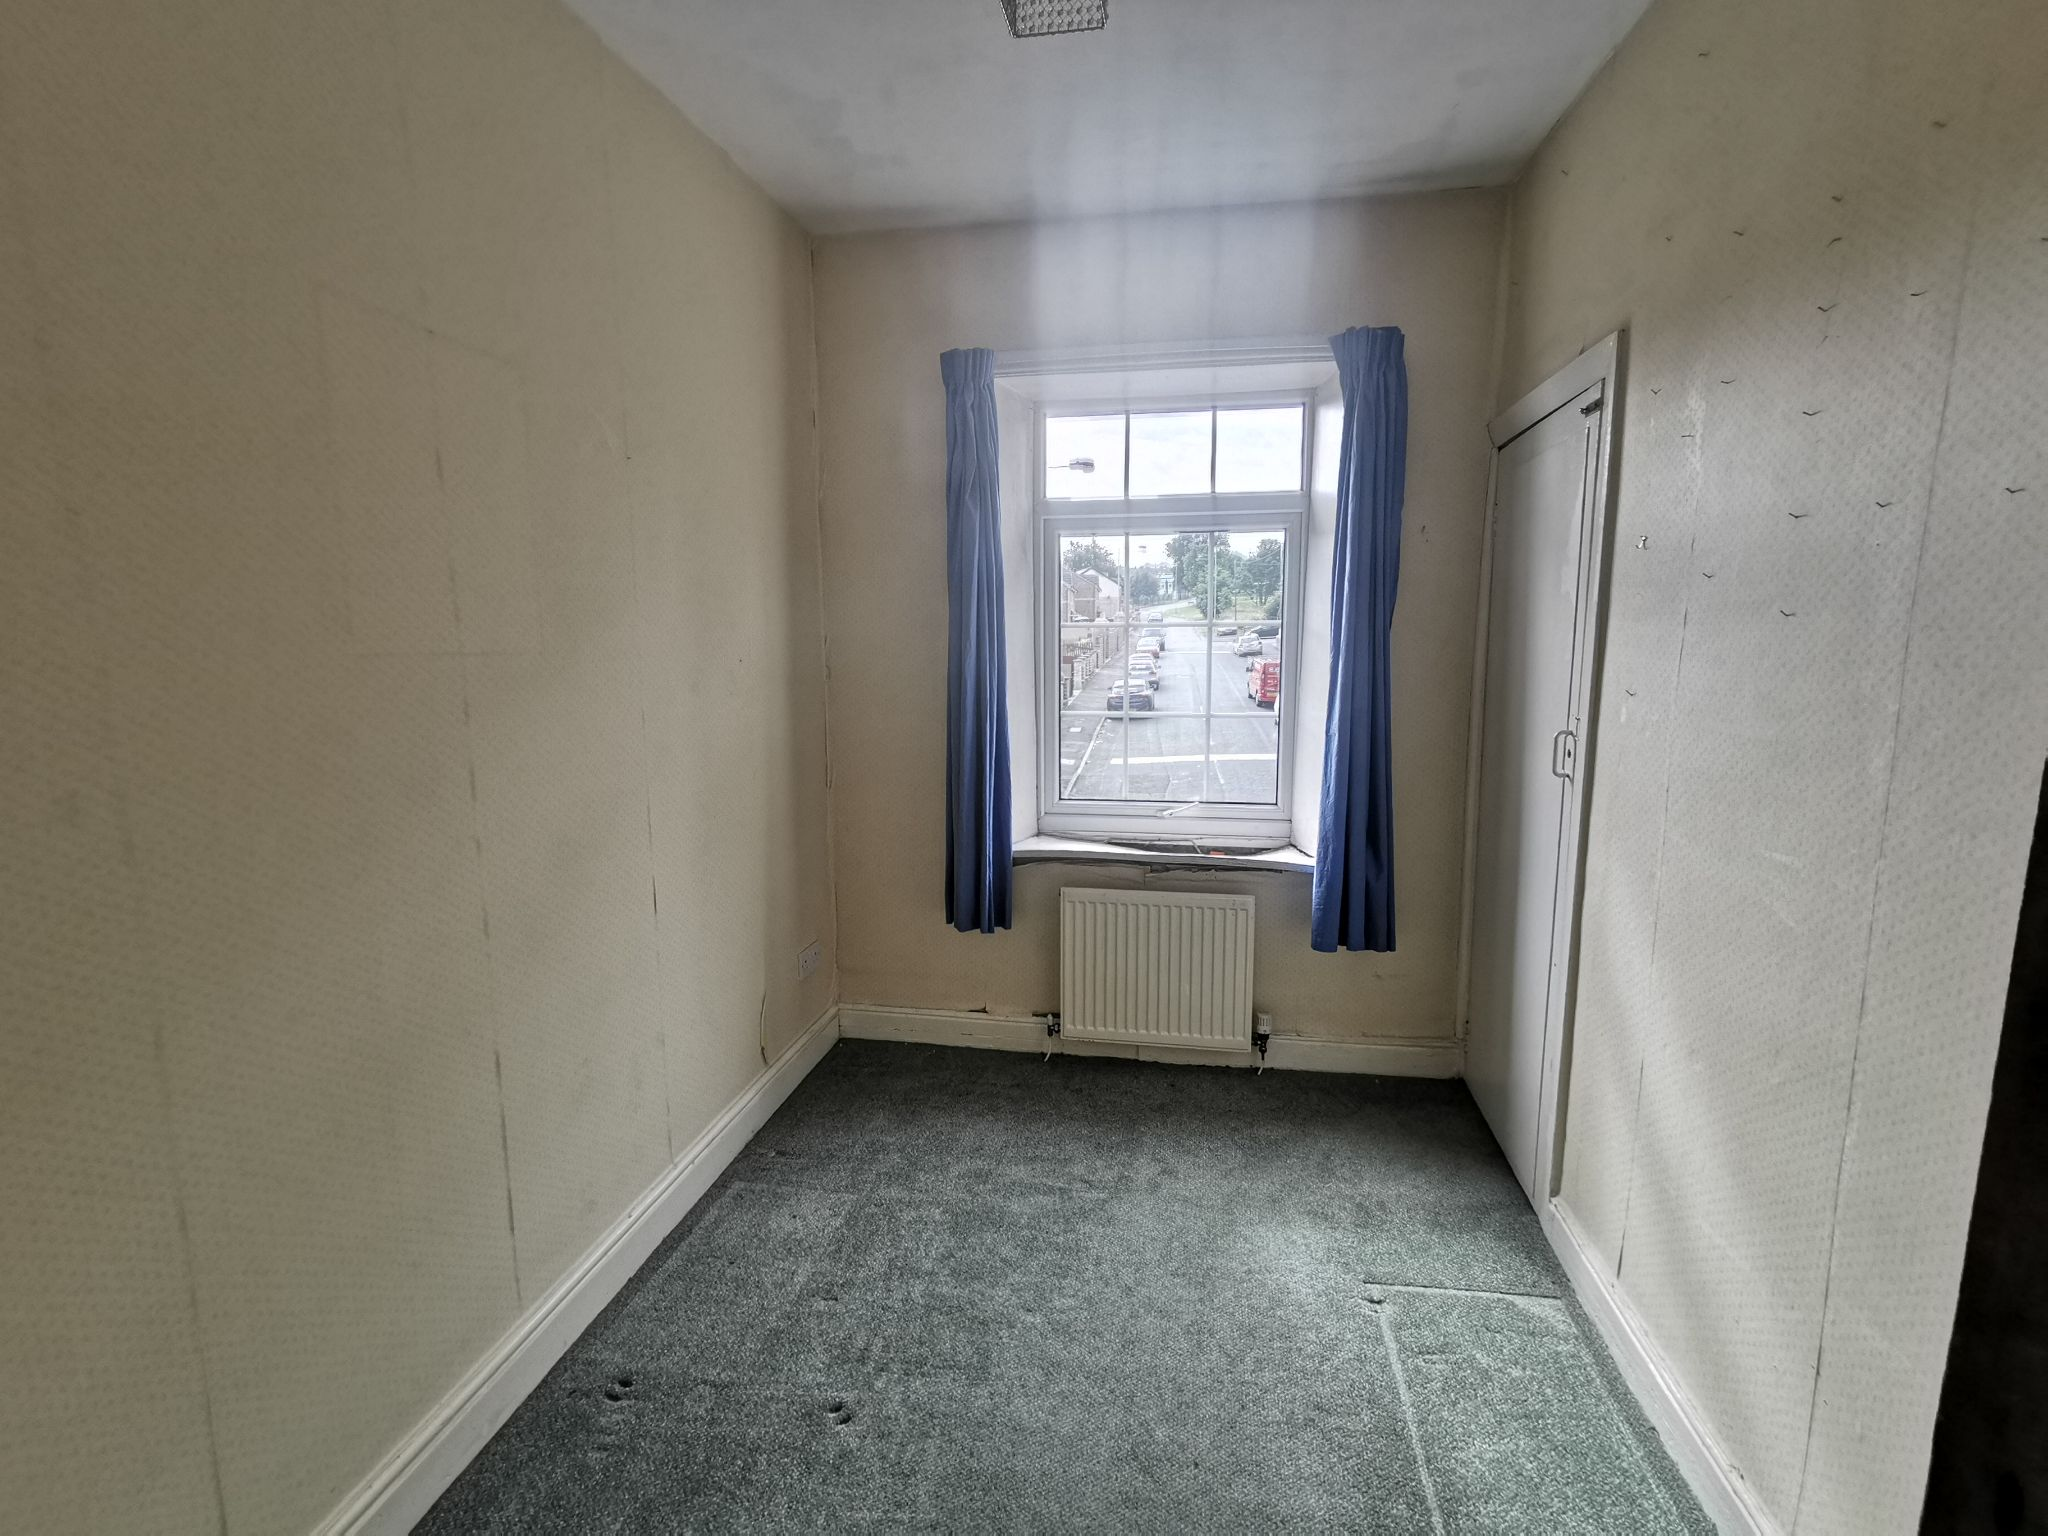 3 bedroom detached house For Sale in Bradford - Photograph 13.